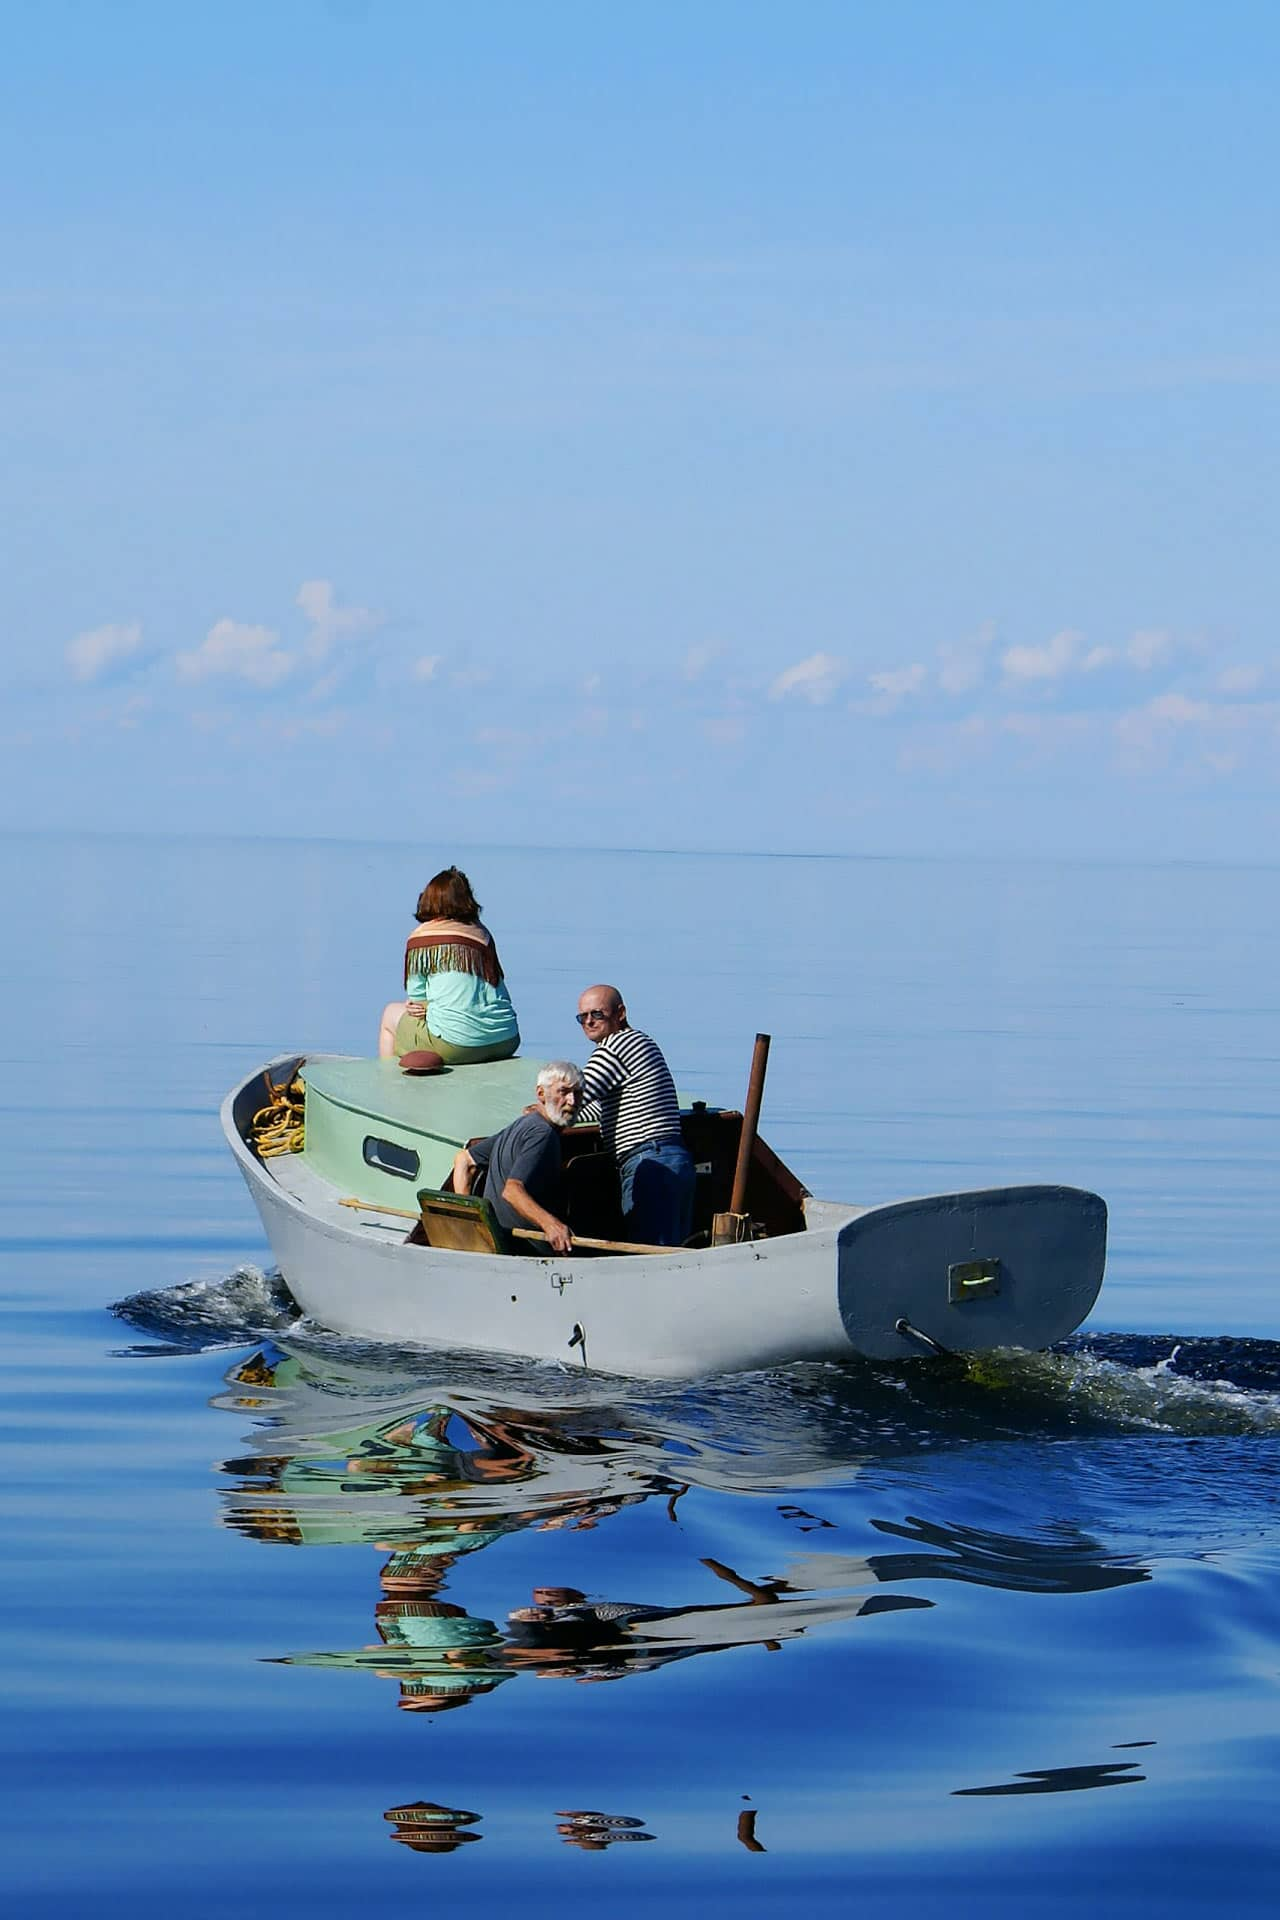 A fisher boat with three people in the sea, sky and sea of the same blue color